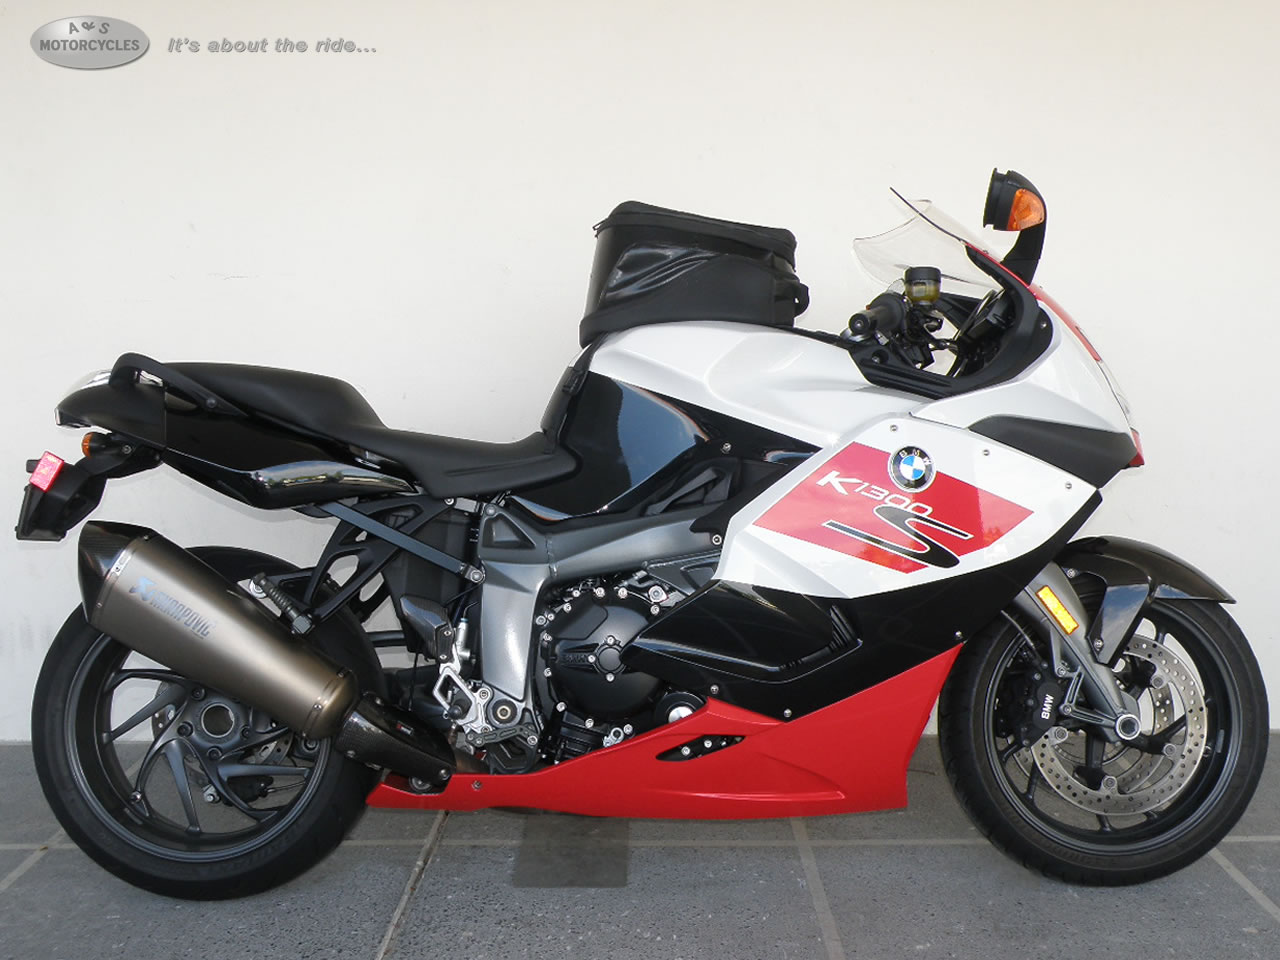 2014 BMW K1300S 30 Year Anniversary Model, motorcycle listing